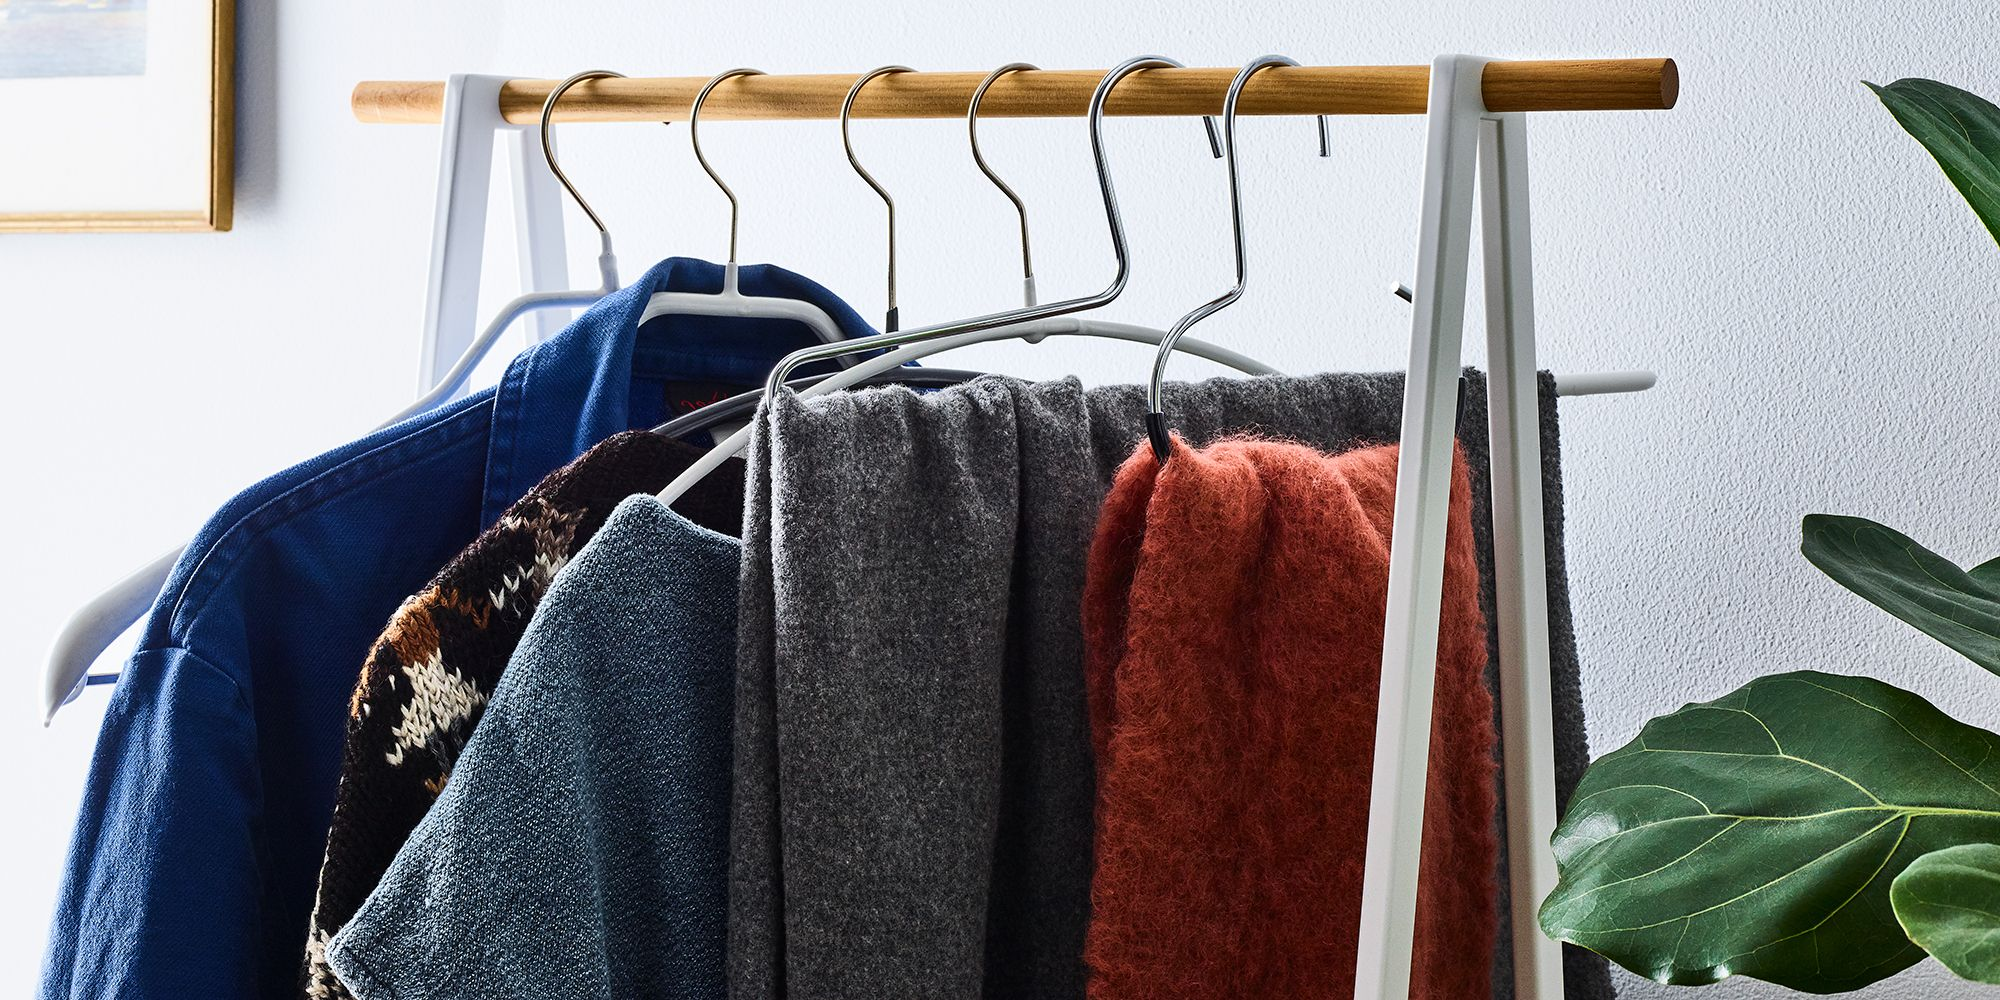 I Thought I Had My Closet Figured Out—Then I Met These Hangers